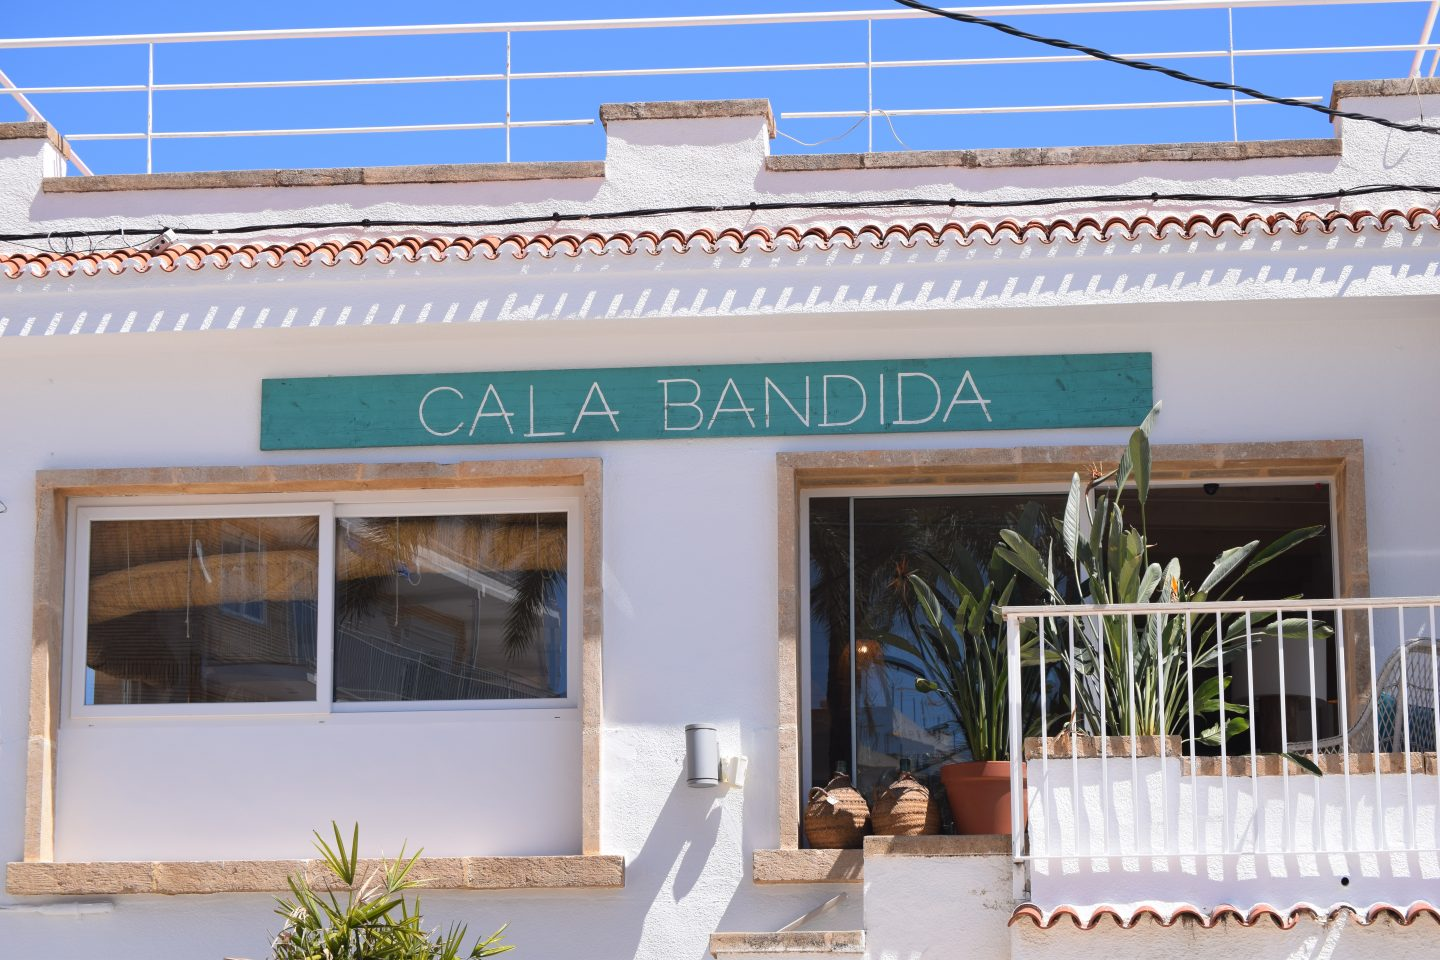 Our new favourite…Cala Bandida